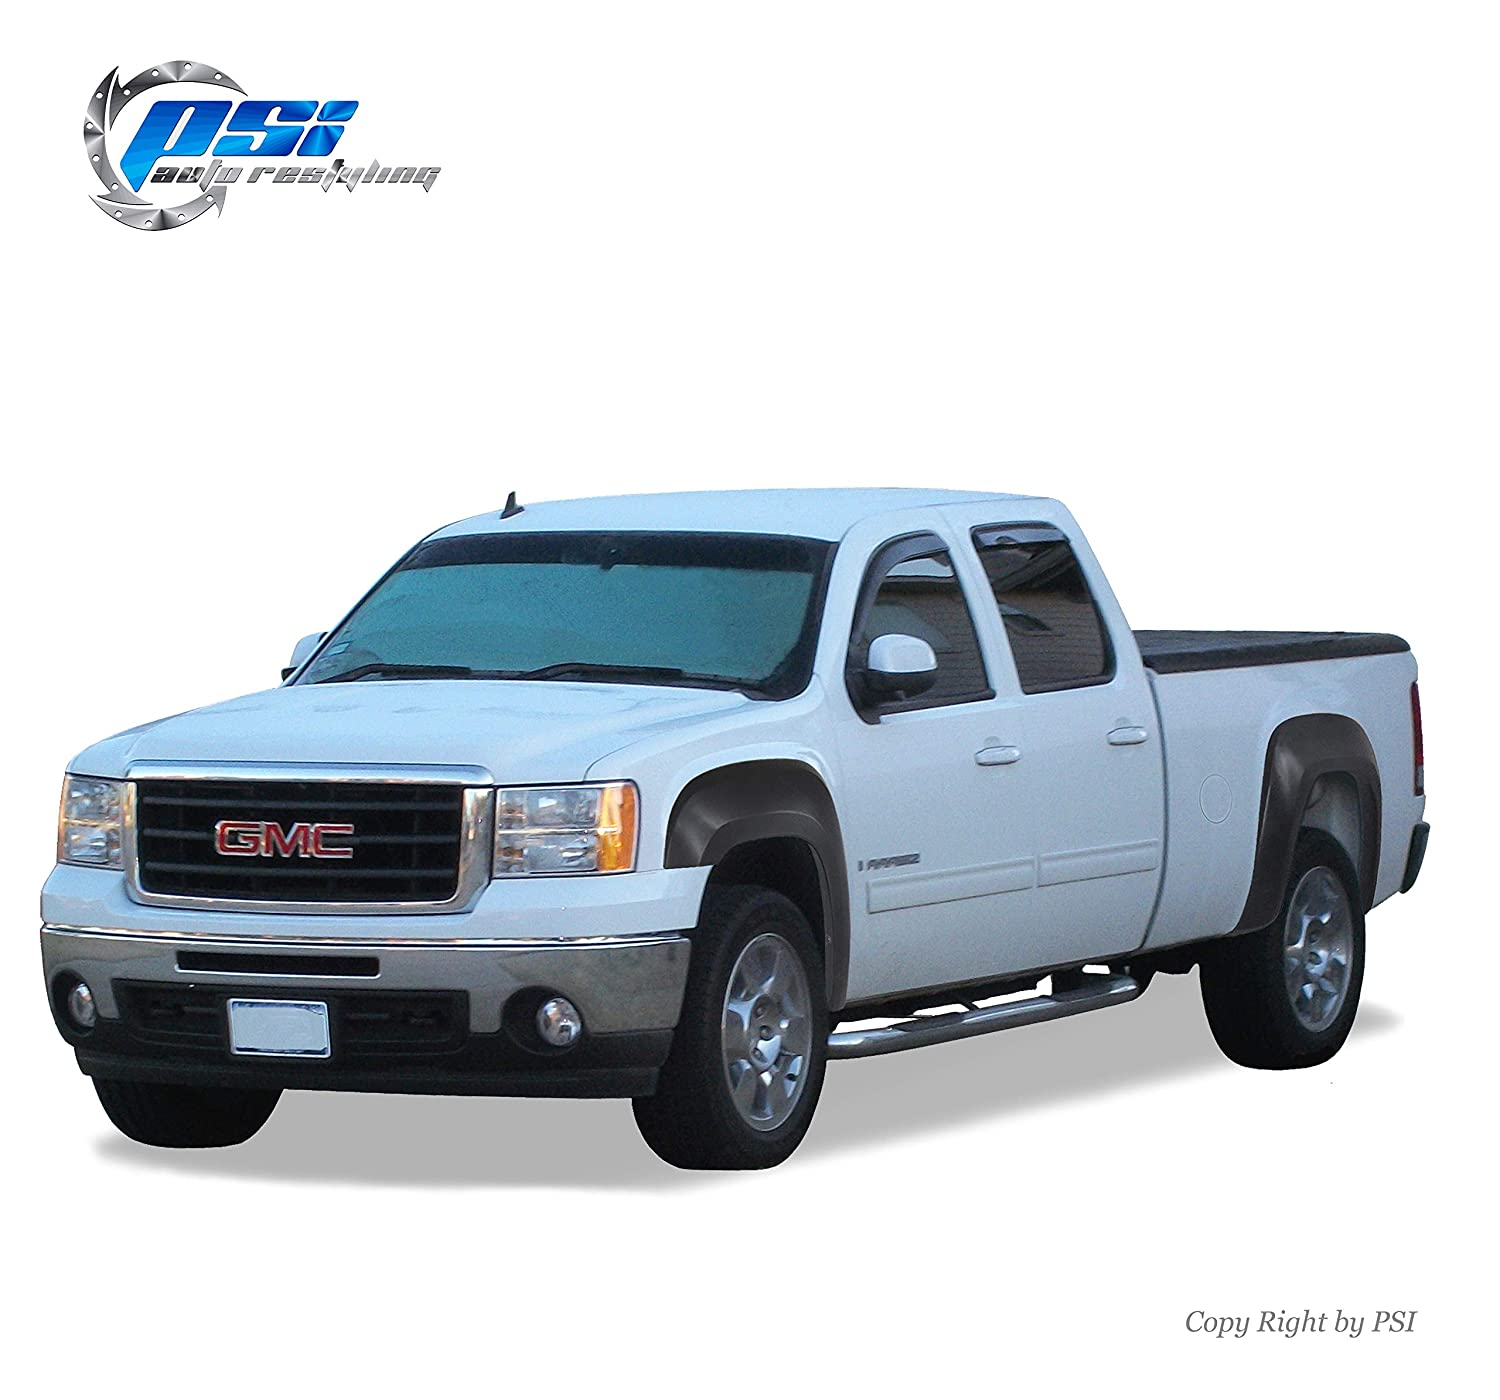 PSI Auto Restyling A8000113 OE Style Fender Flares Paintable Finish Fits 07-13 GMC Sierra 1500; 07-14 GMC Sierra 2500//3500; Compatible w// 78.7 97.6 Fleetside Only; Not Compatible w//Dually Models